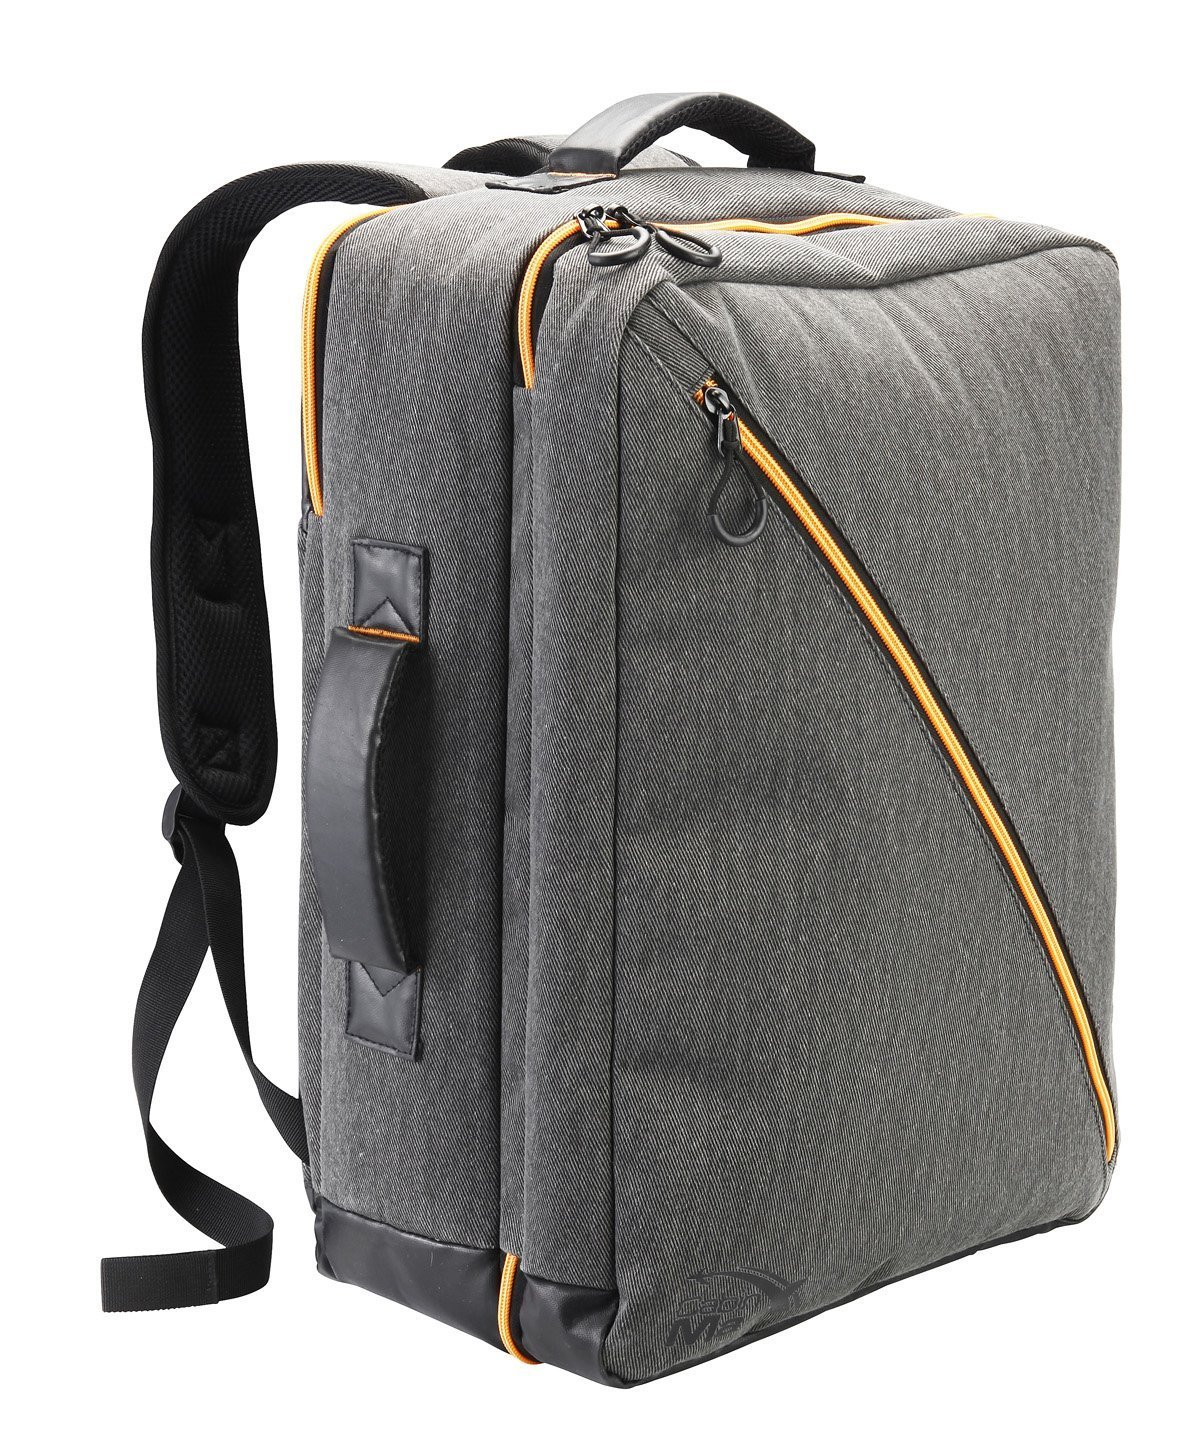 Cabin max oxford 50x40x20cm carry on luggage backpack for Cabin bag backpack